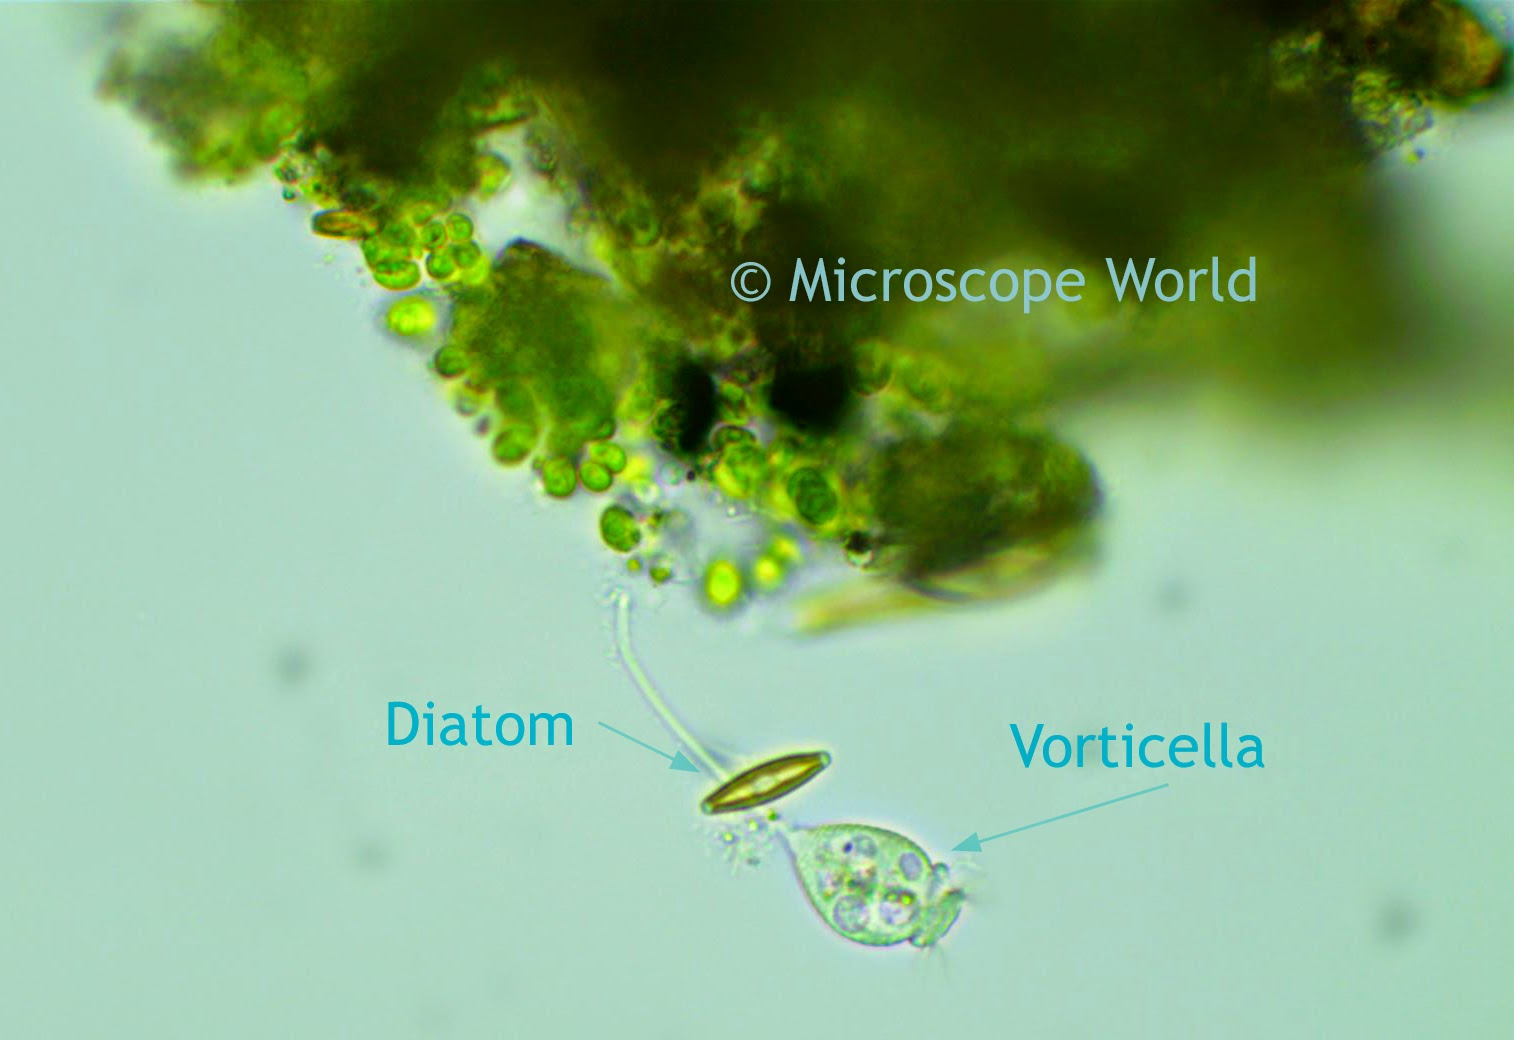 Diatom and Vorticella under the microscope at 400x.